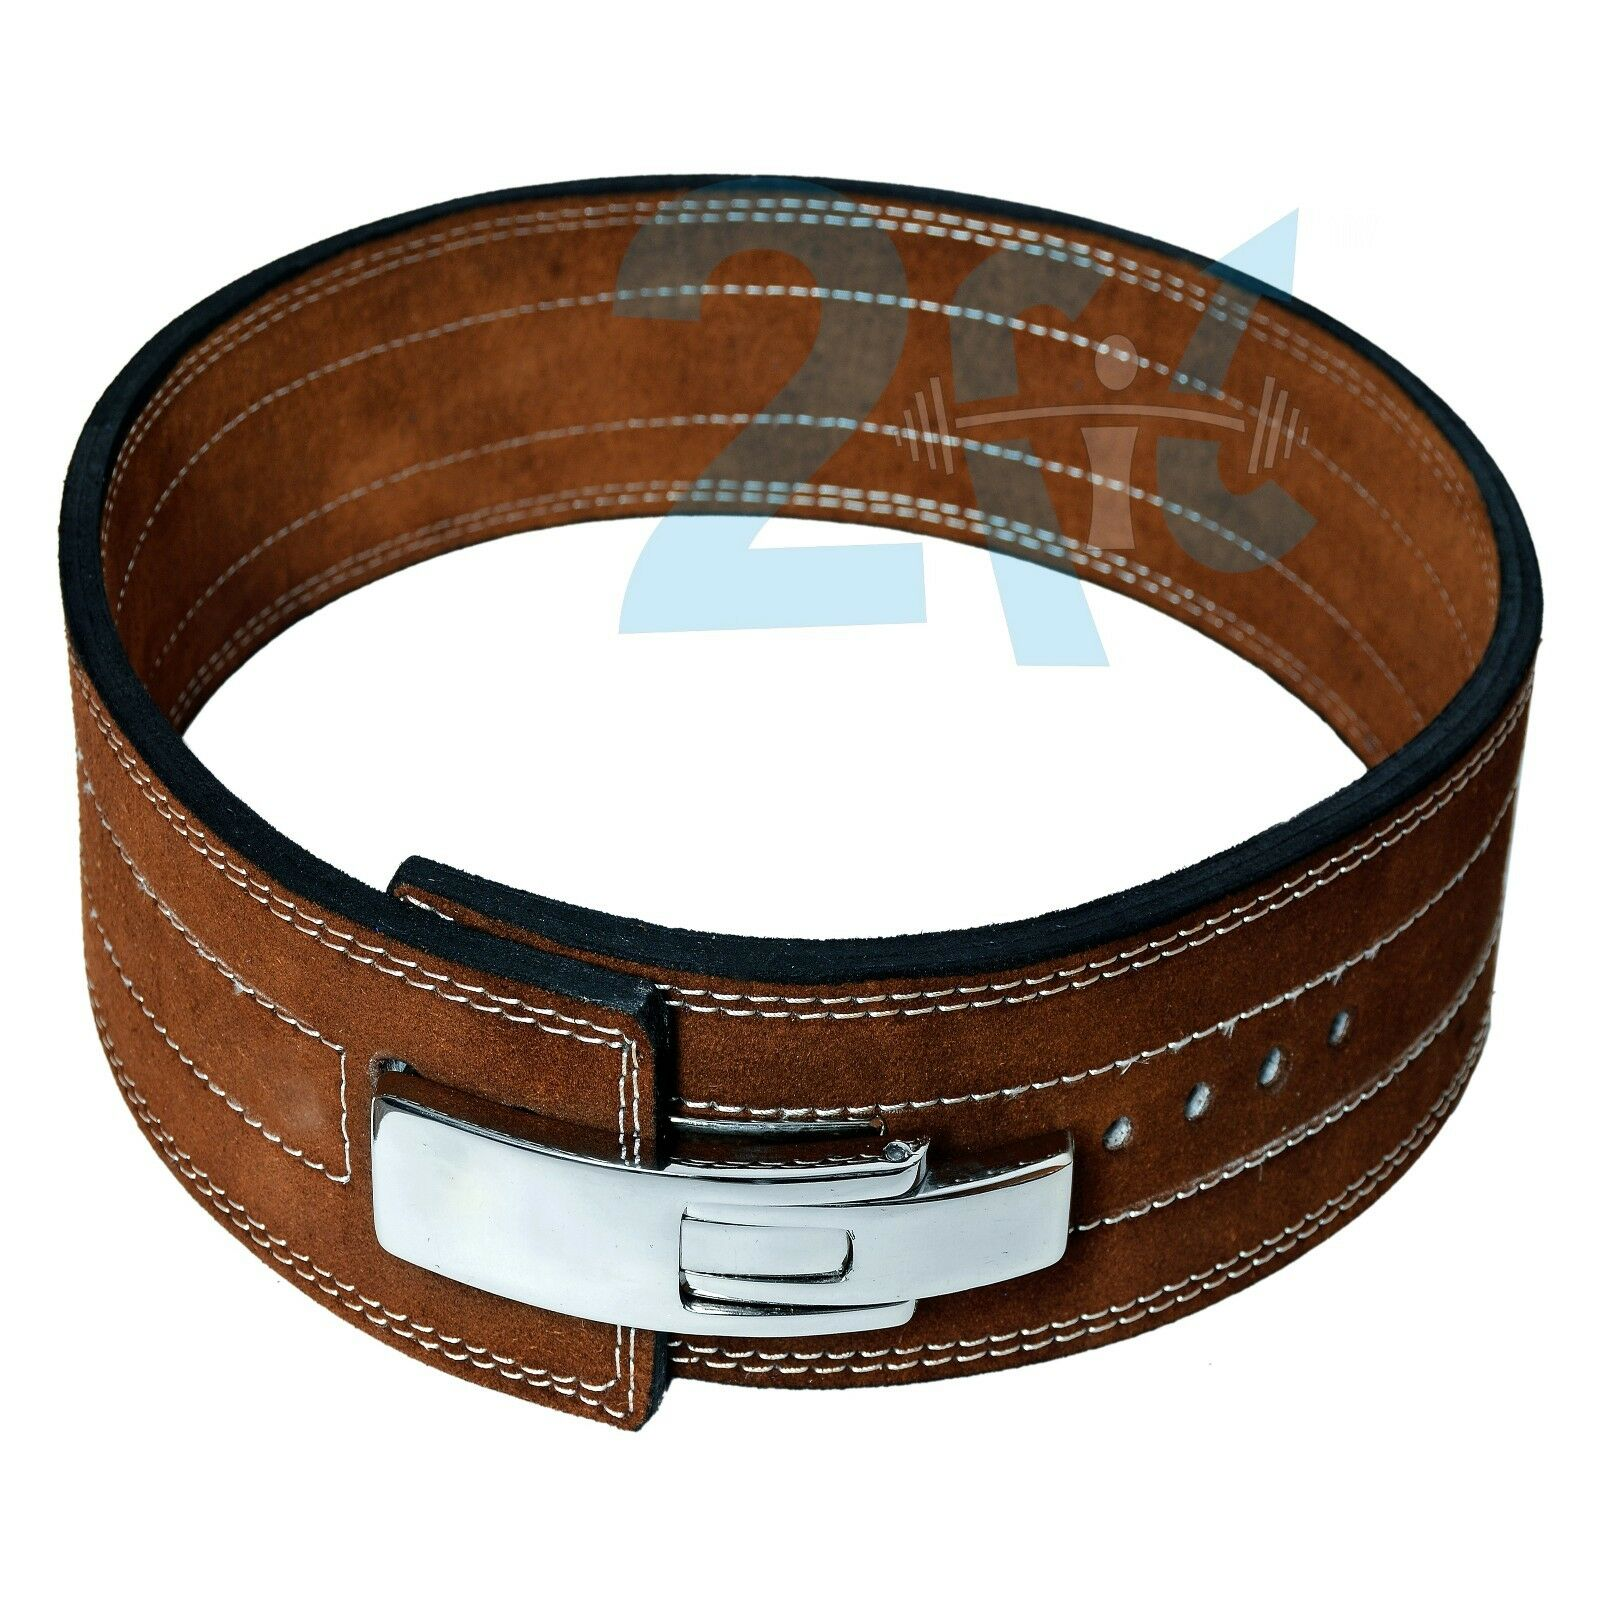 2fit Weight energia Leather Lever Pro Belt 10MM Gym Training energia lifting Marronee